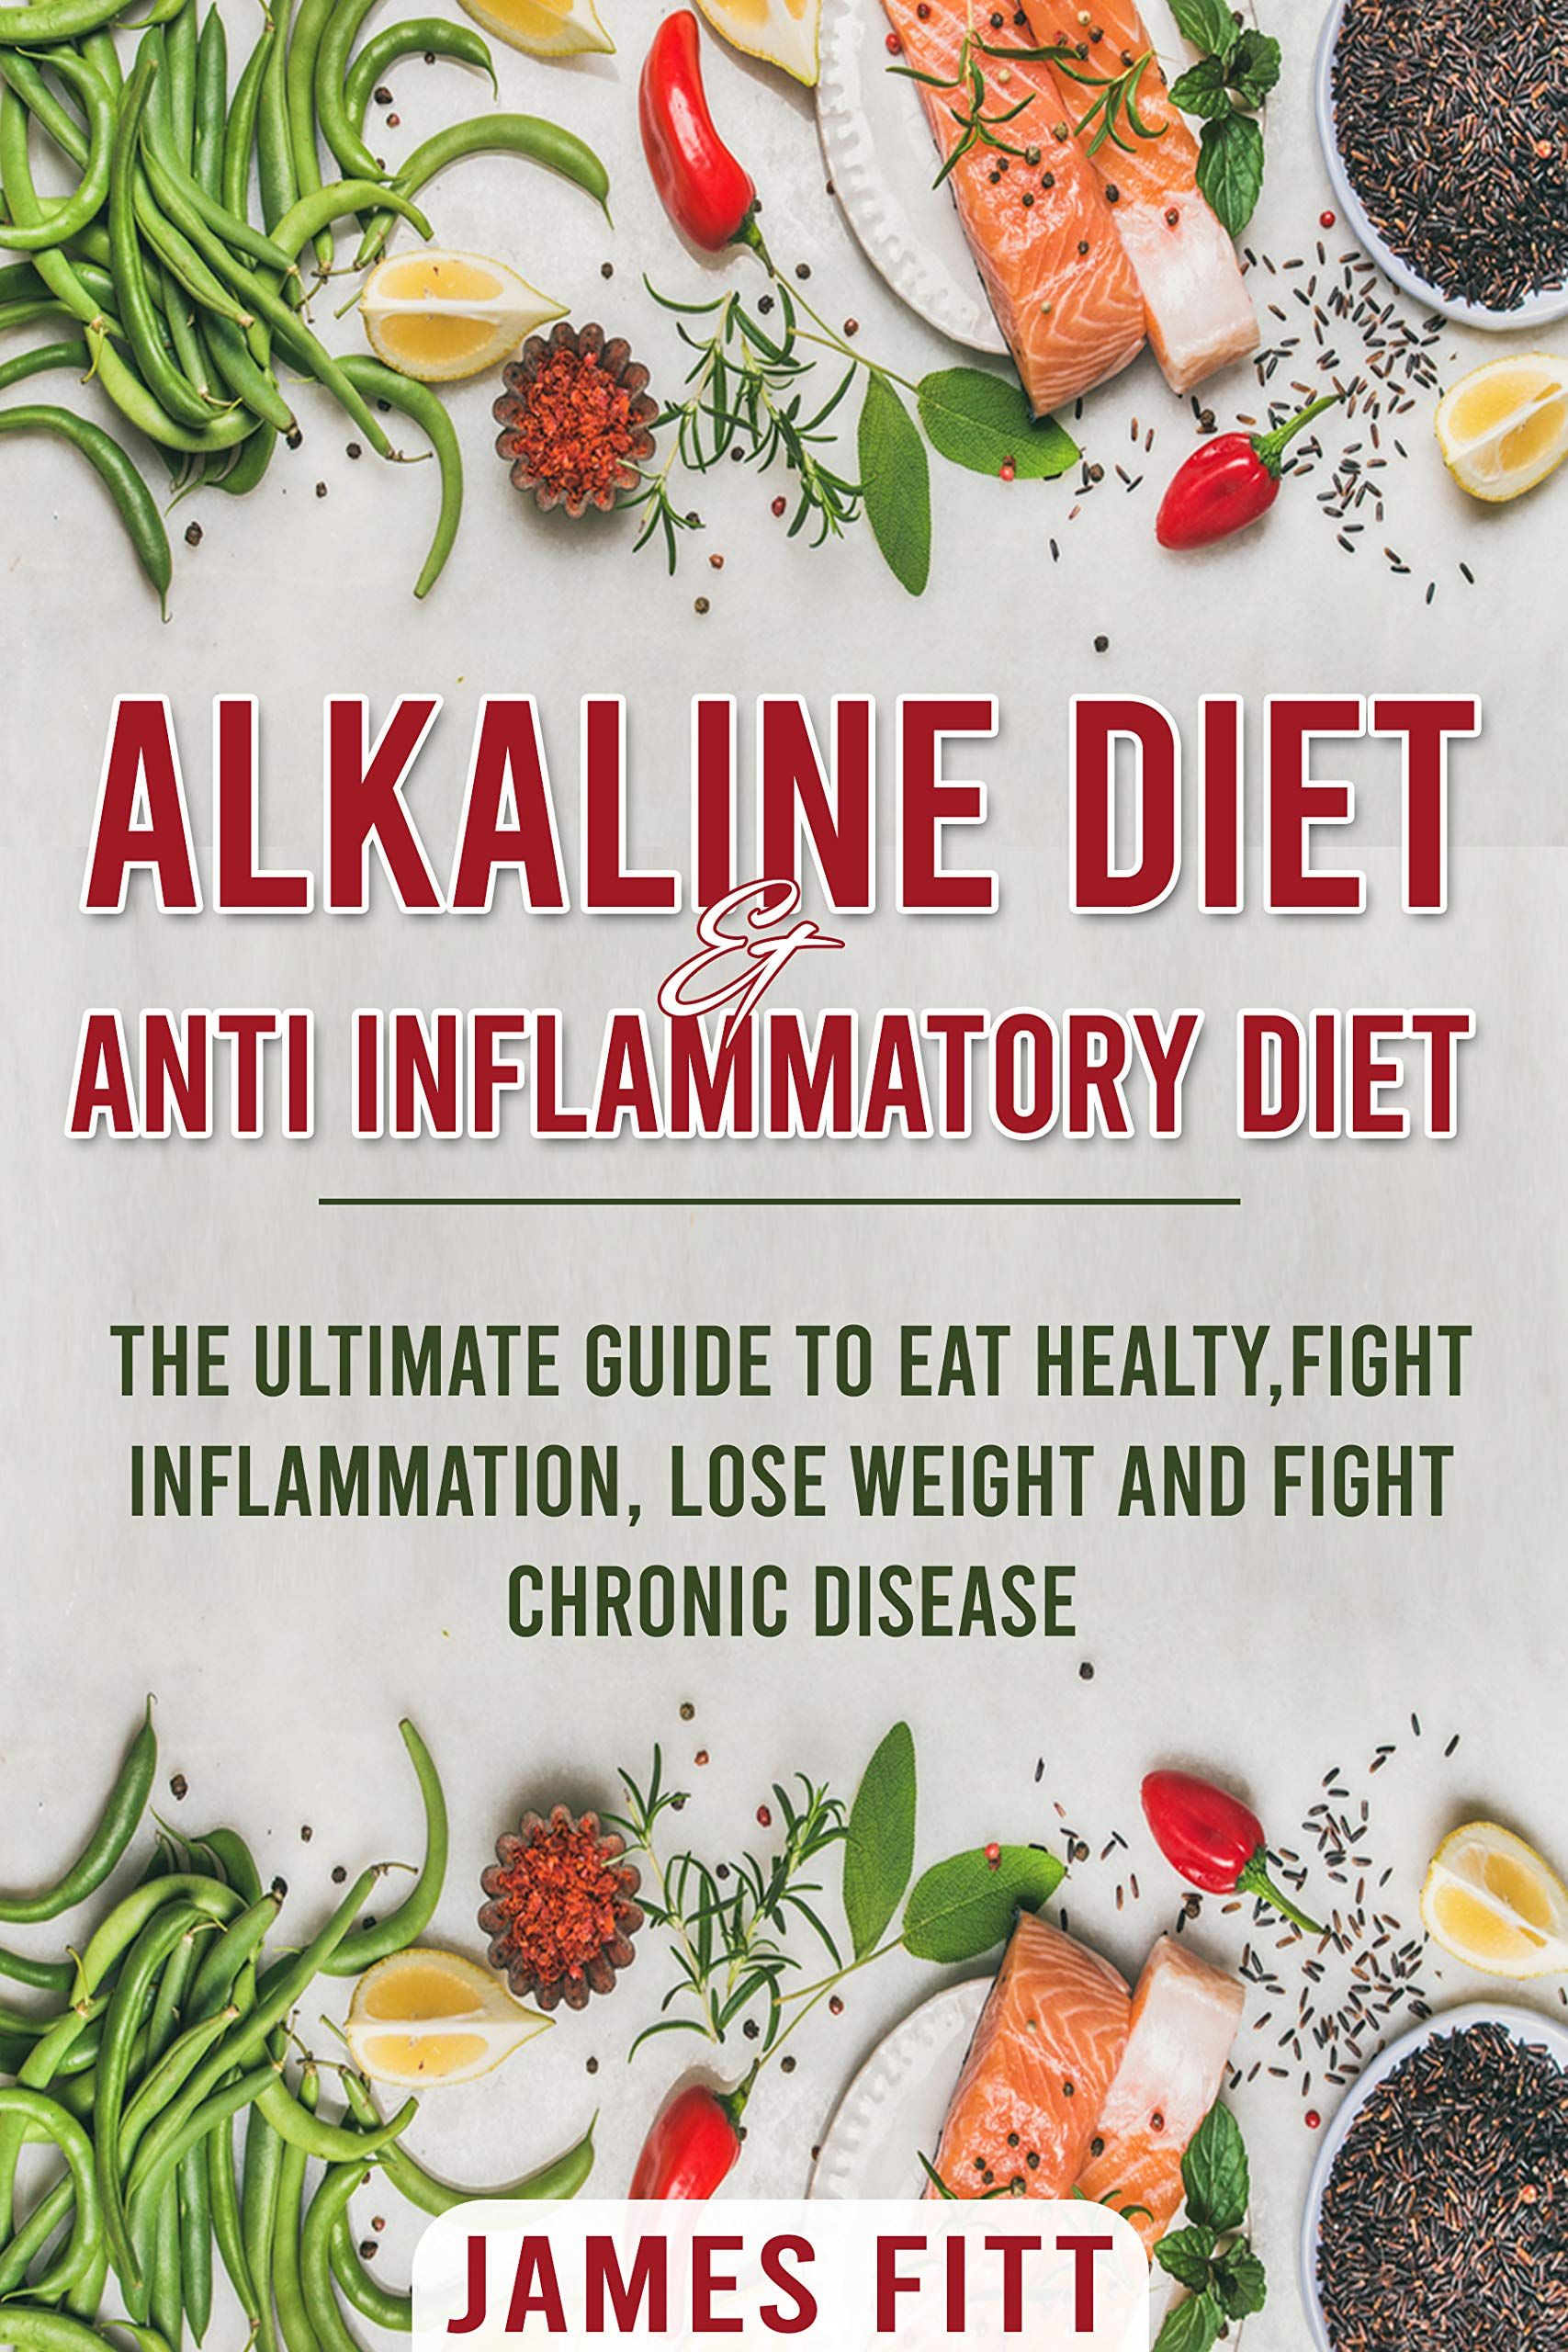 Alkaline Diet Anti Inflammatory Diet For Beginners The Ultimate Guide To Eat Healty Fight Inflammati In 2020 Anti Inflammatory Diet Alkaline Diet Diet Cook Books